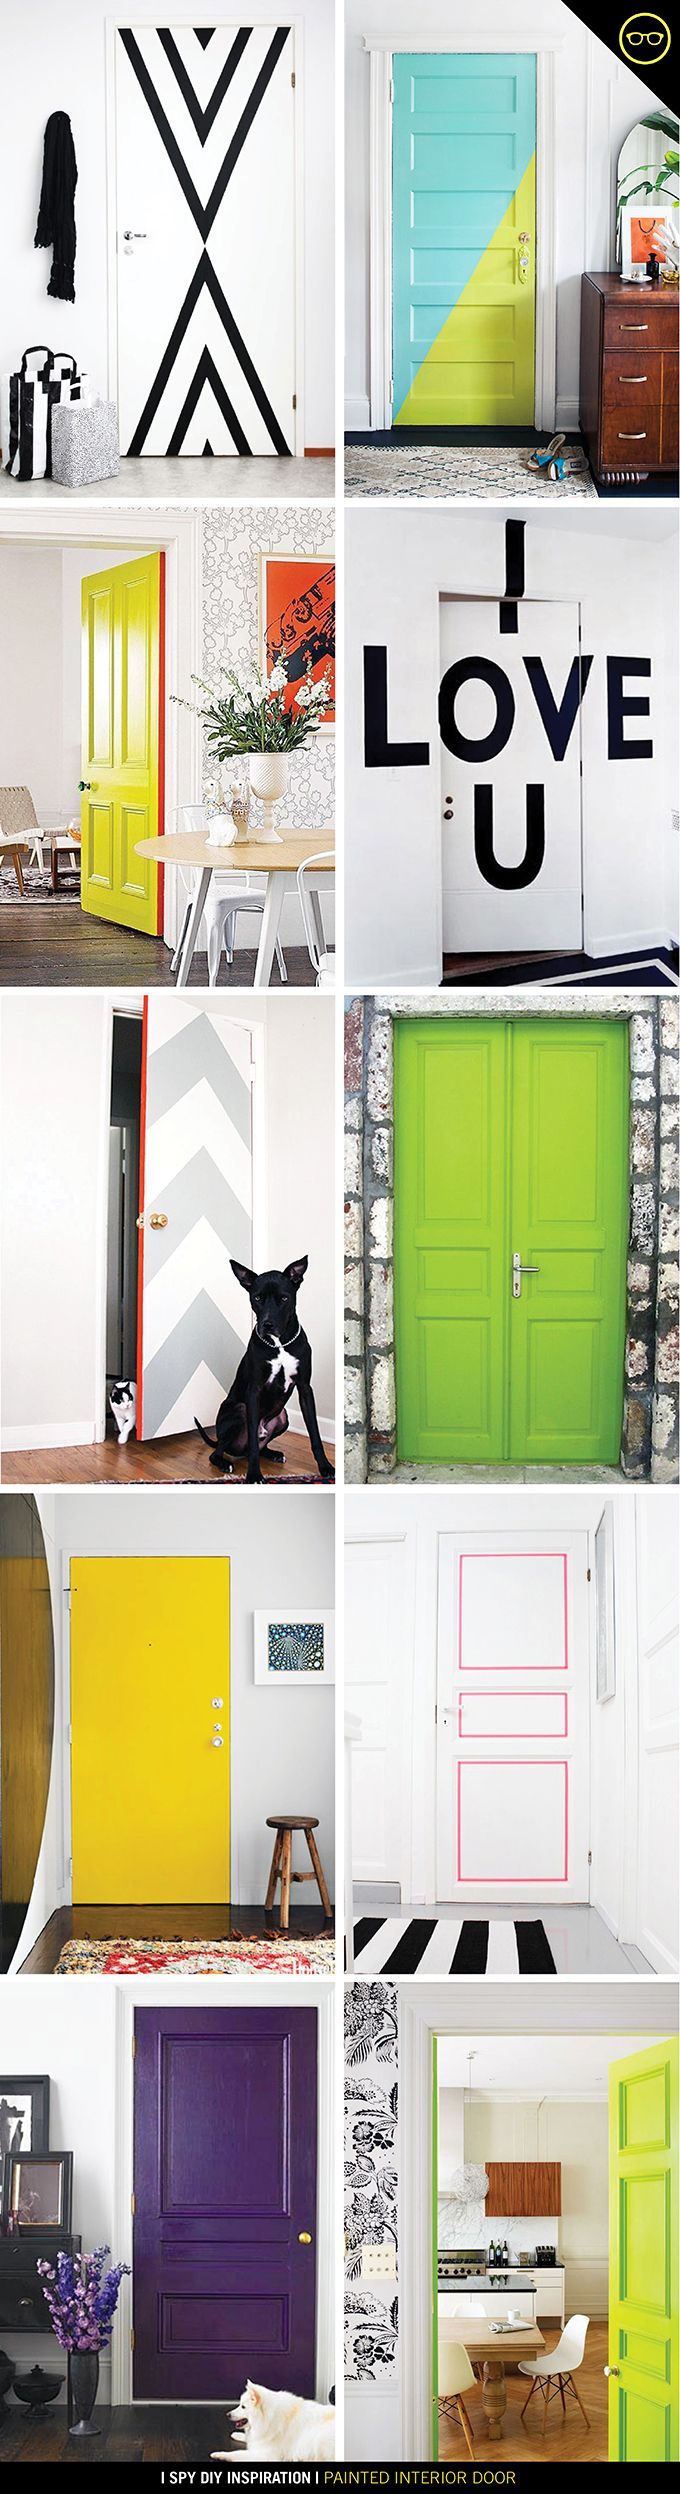 Bedroom Door Painting Ideas